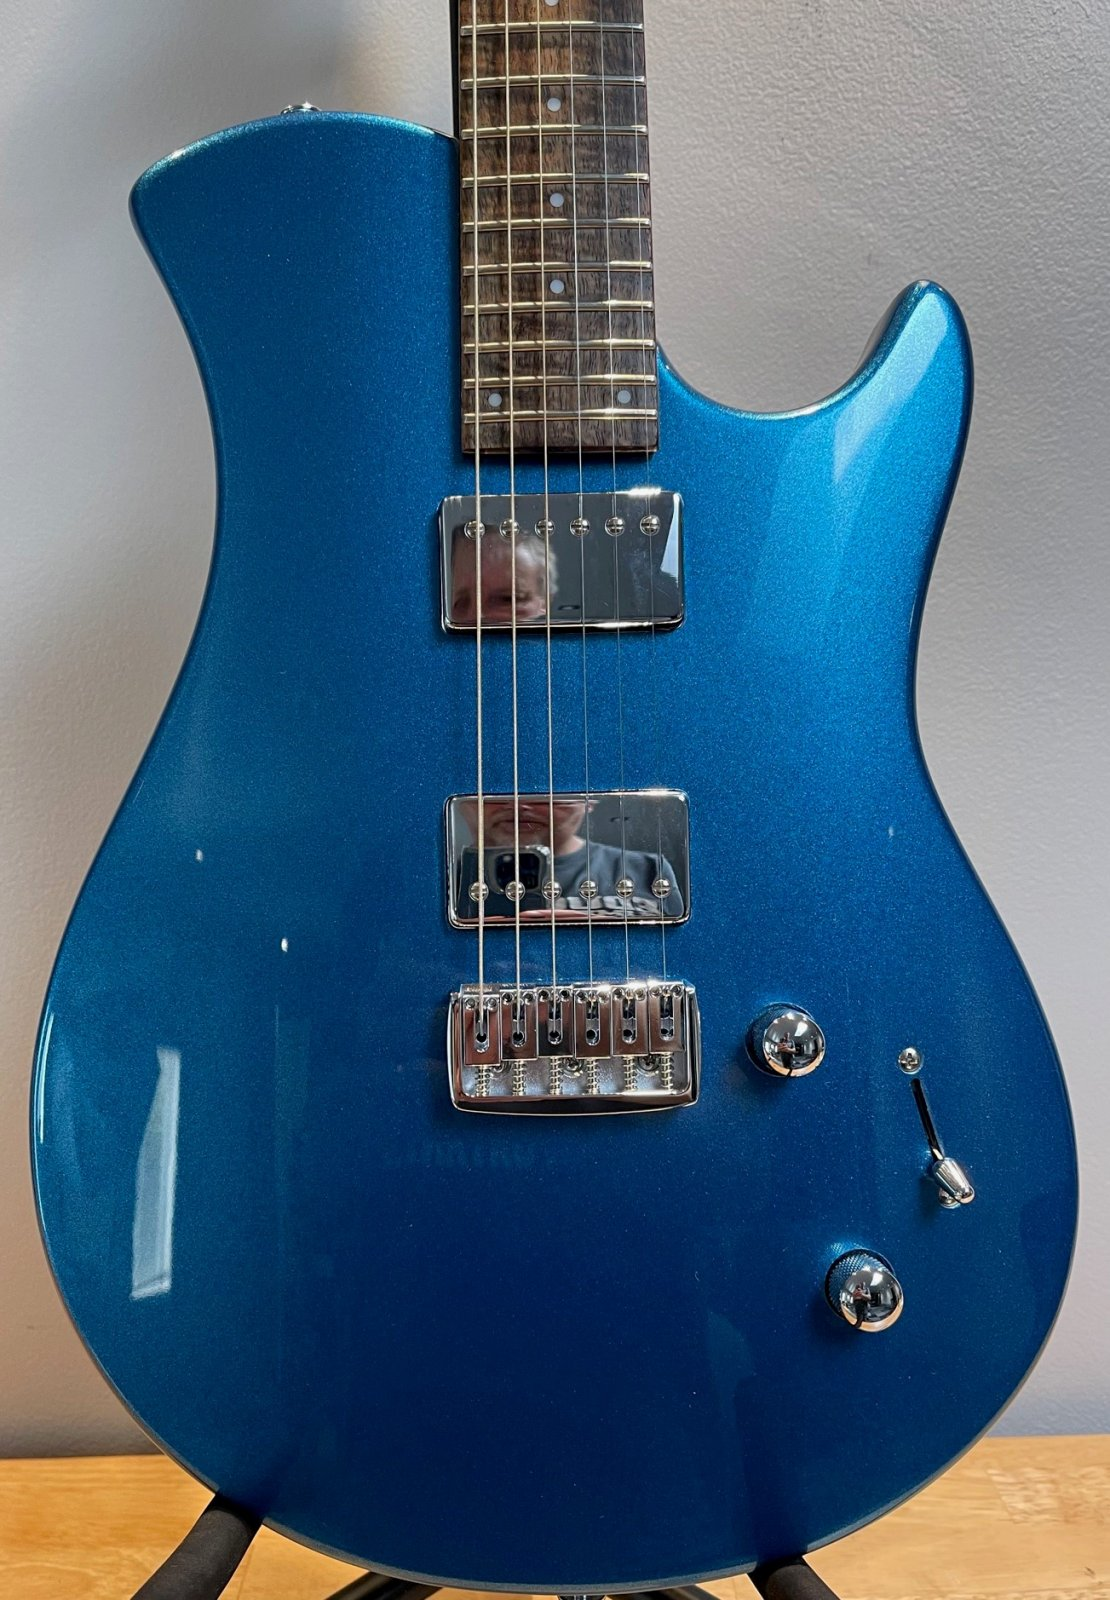 Relish Trinity Electric Guitar in Metallic Blue with a gig bag